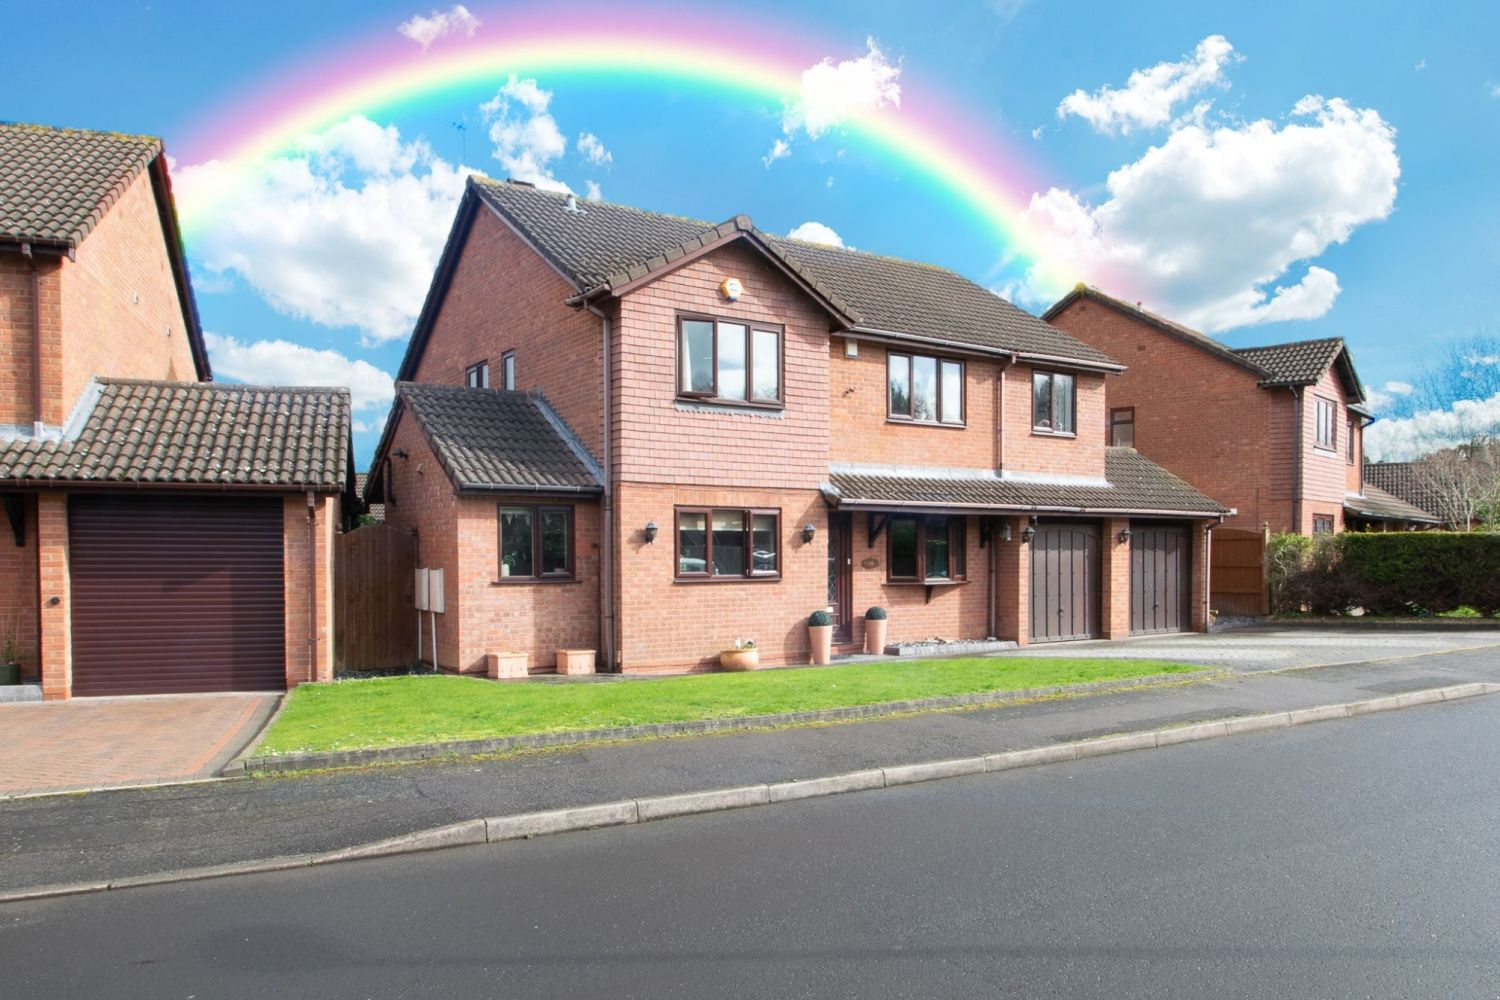 5 bed detached for sale in Melrose Avenue, Oldswinford, Stourbridge 1